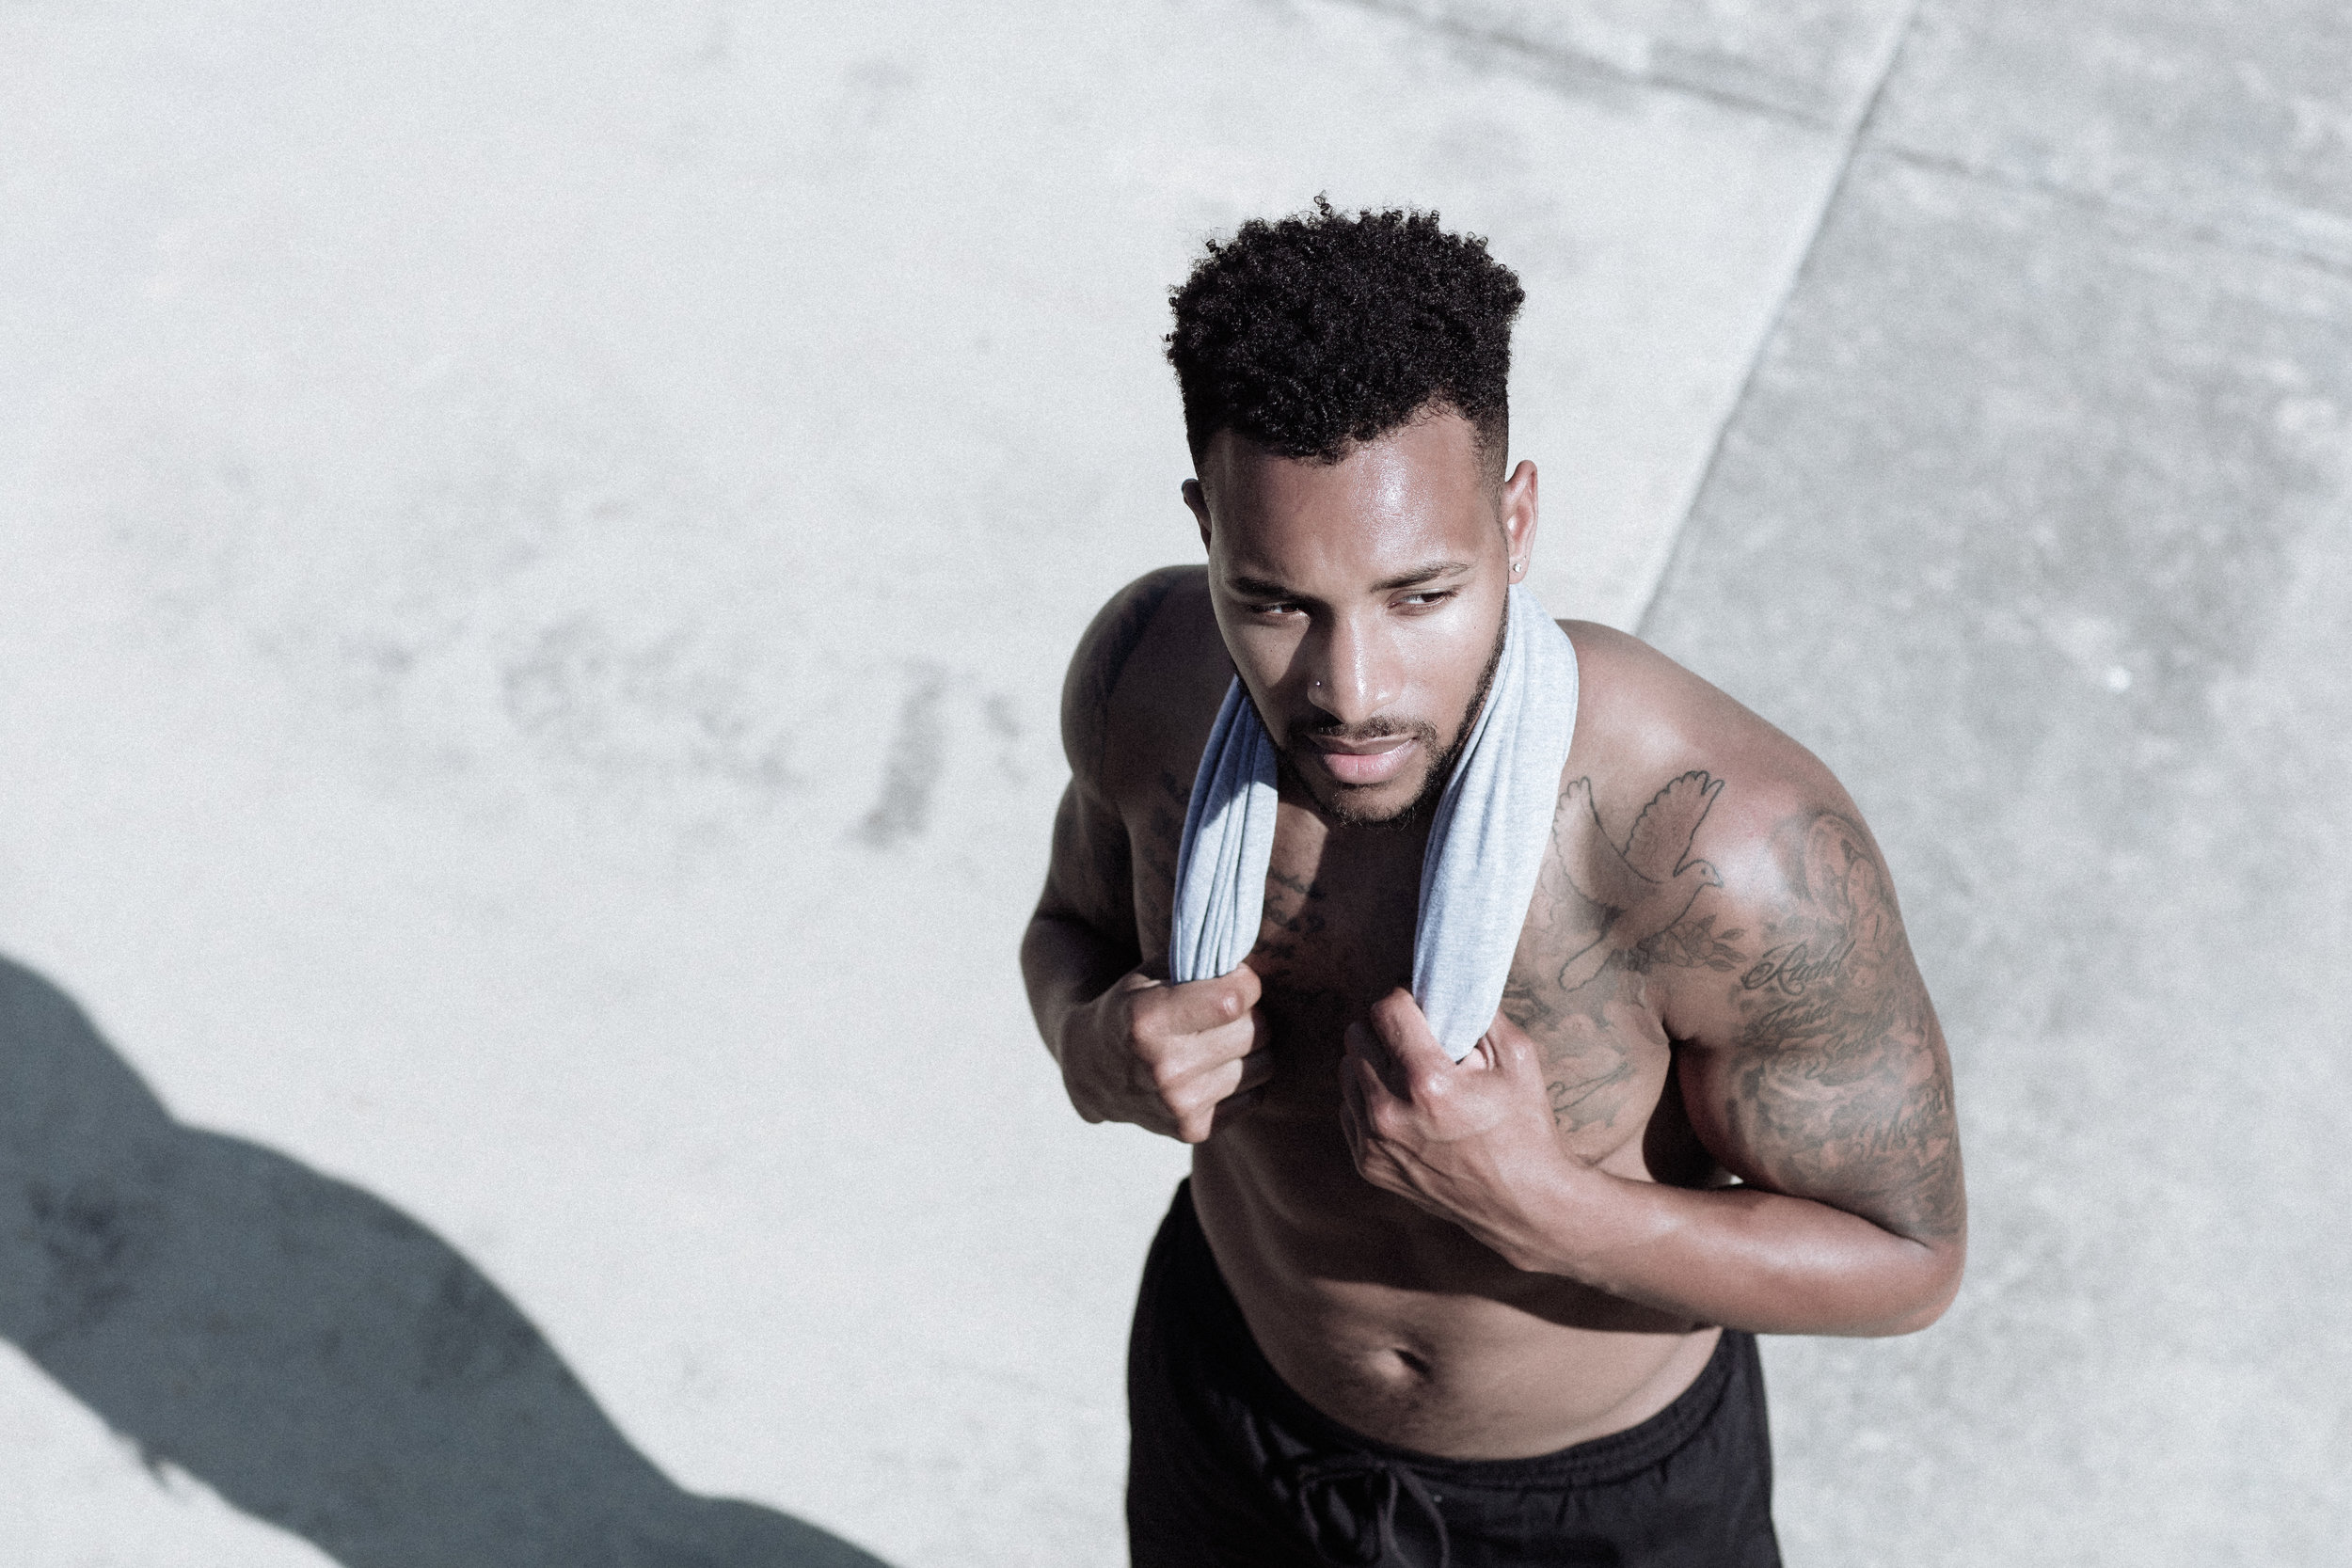 Sport fitness model on a photoshoot with commercial photographer Anick Violette.